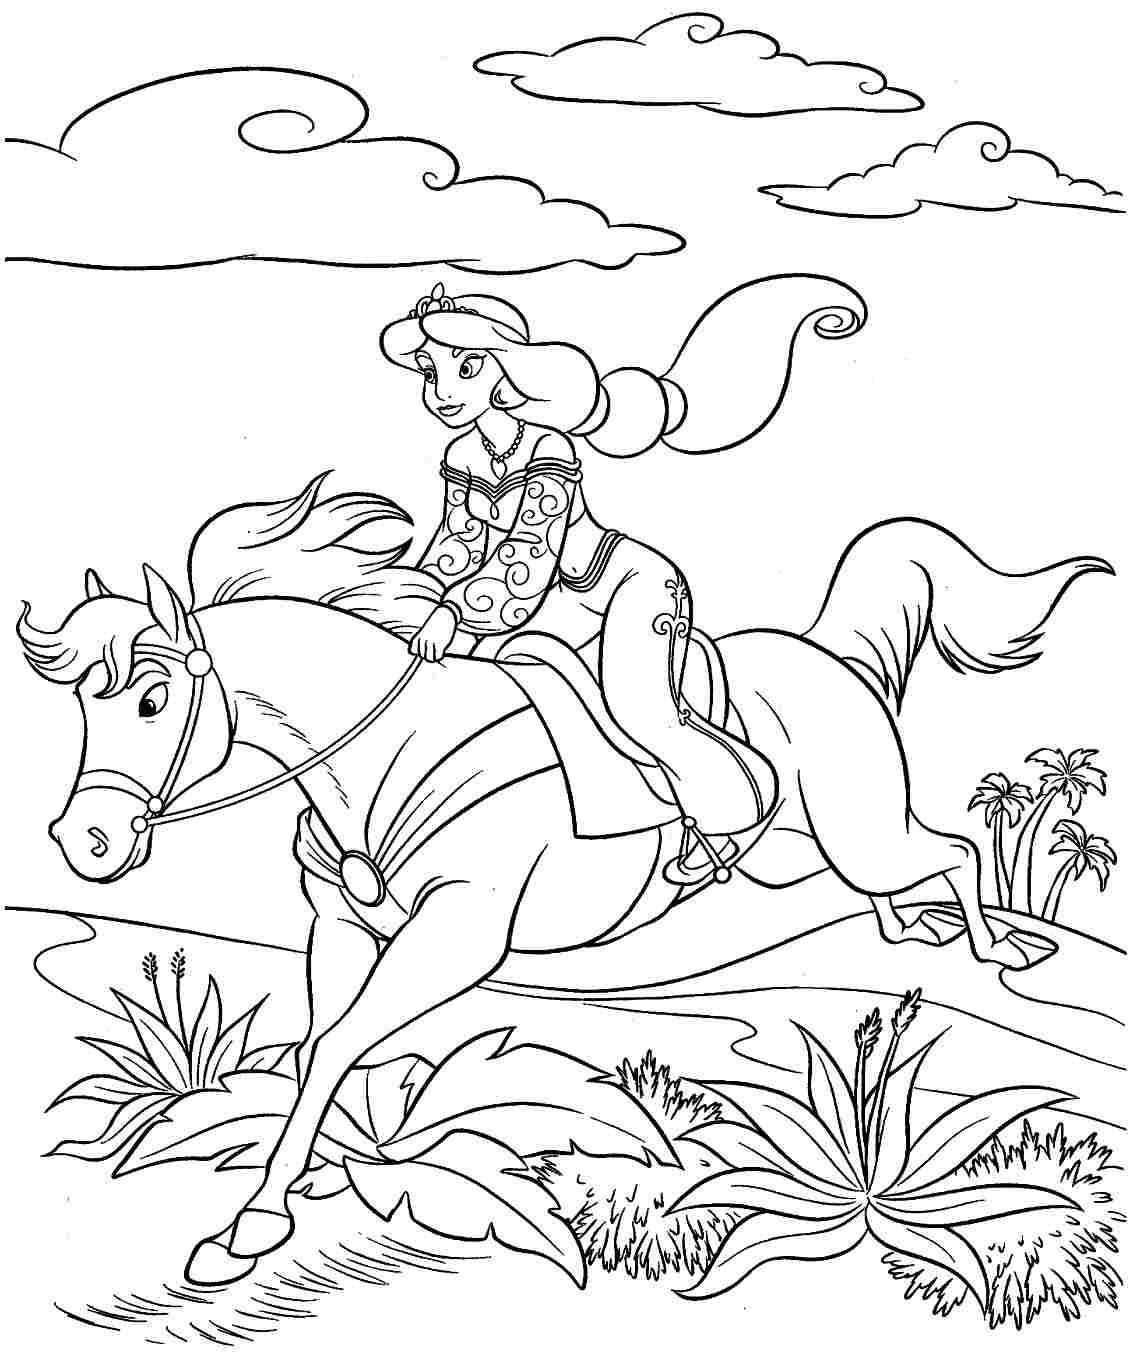 Coloring Pages Disney Princess Jasmine Printable For Kids Boys